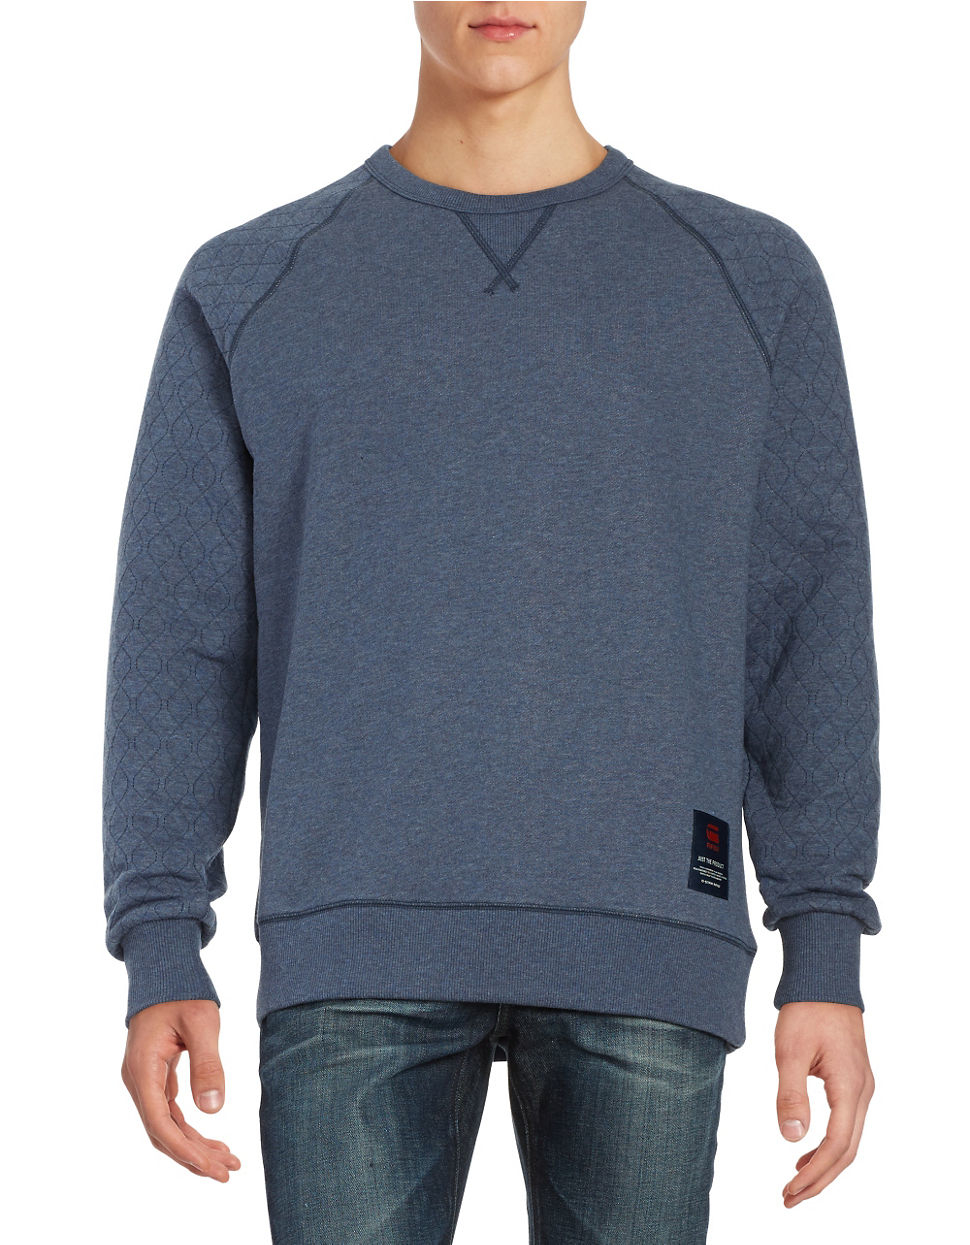 g star raw quilted pullover in blue for men lyst. Black Bedroom Furniture Sets. Home Design Ideas